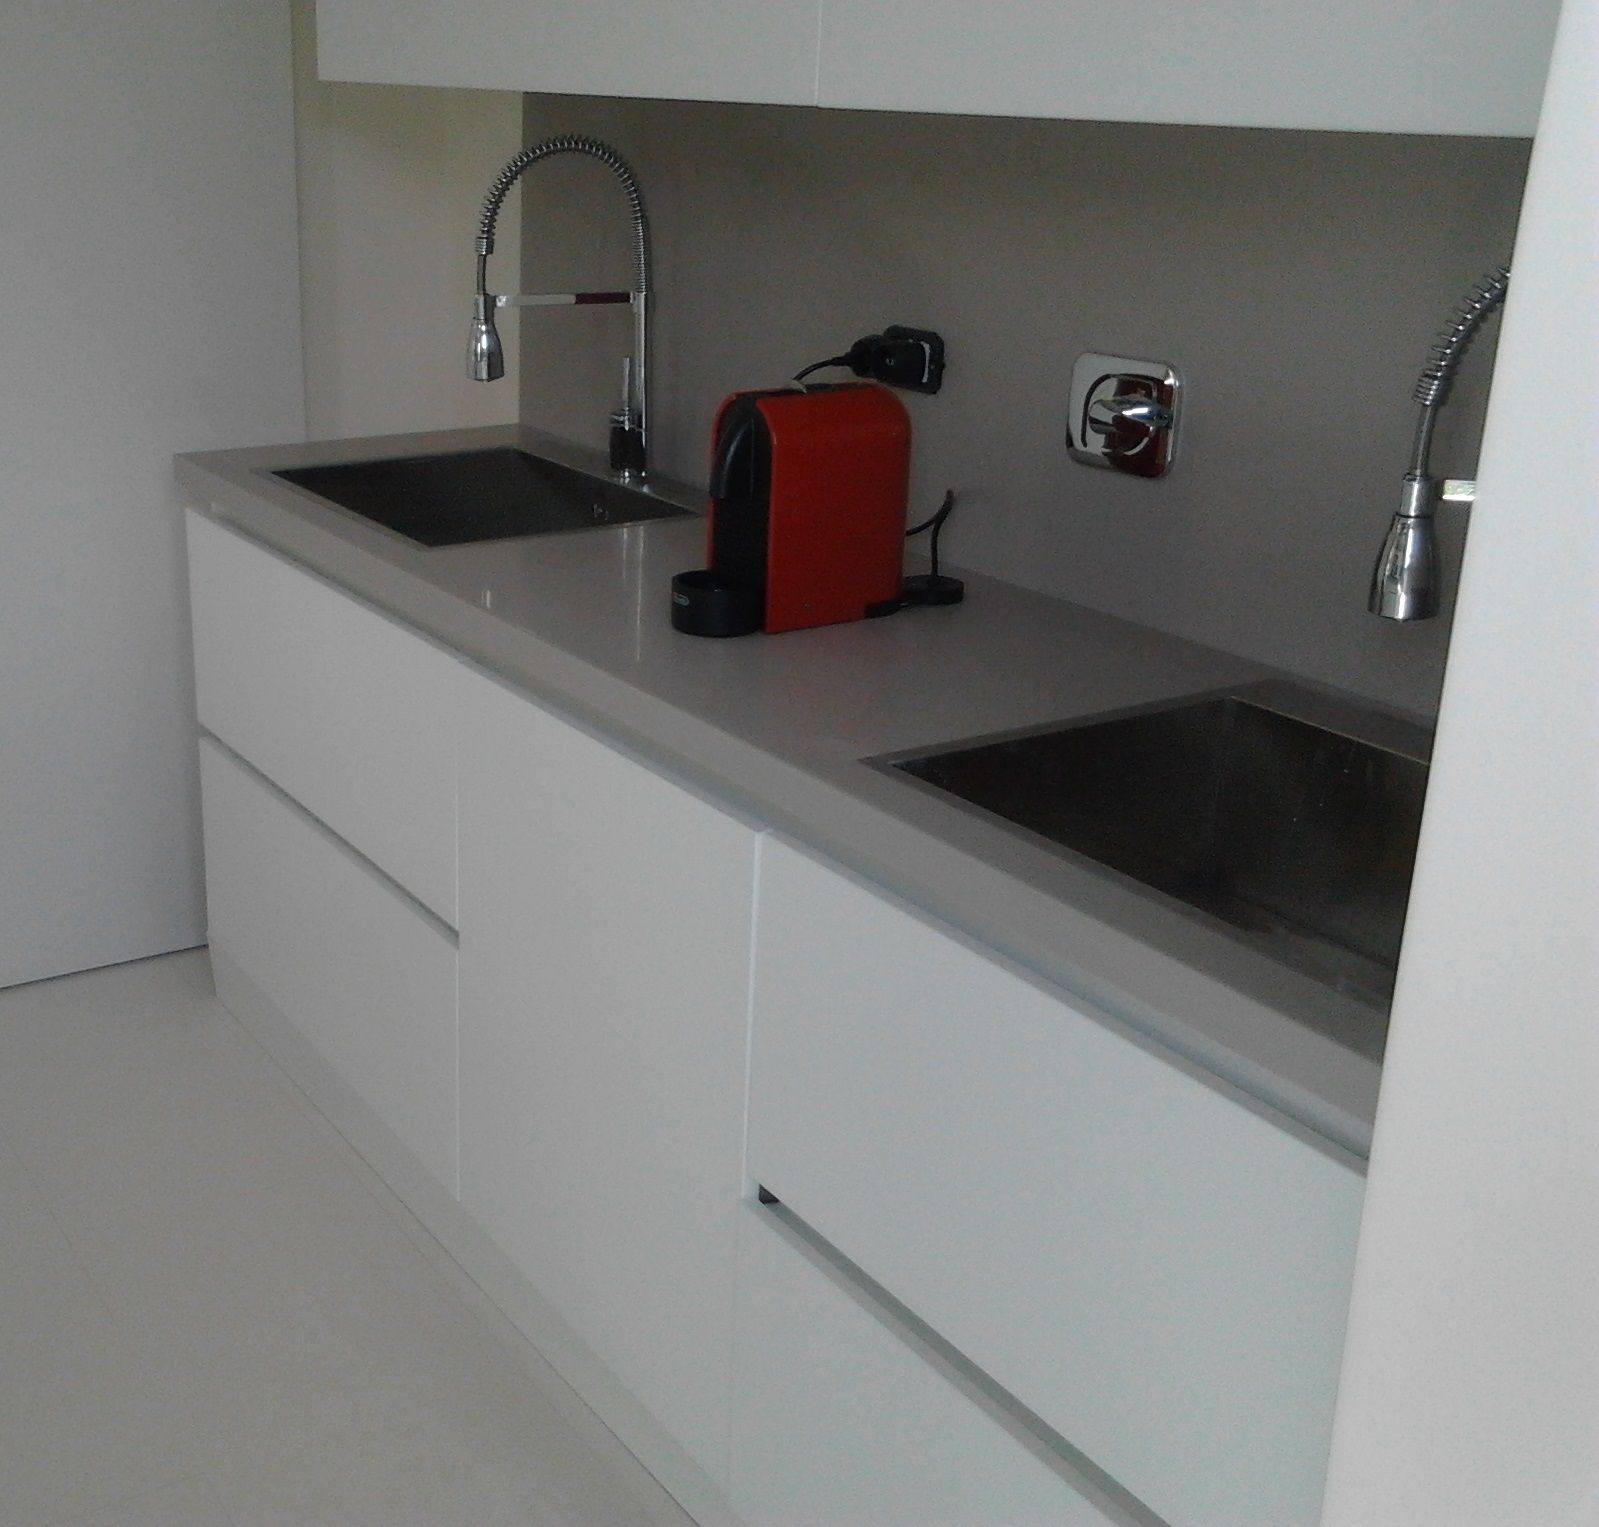 kitchen in mdf doors white matt finishing and top in corian solid surface grey colour: corian kitchen top